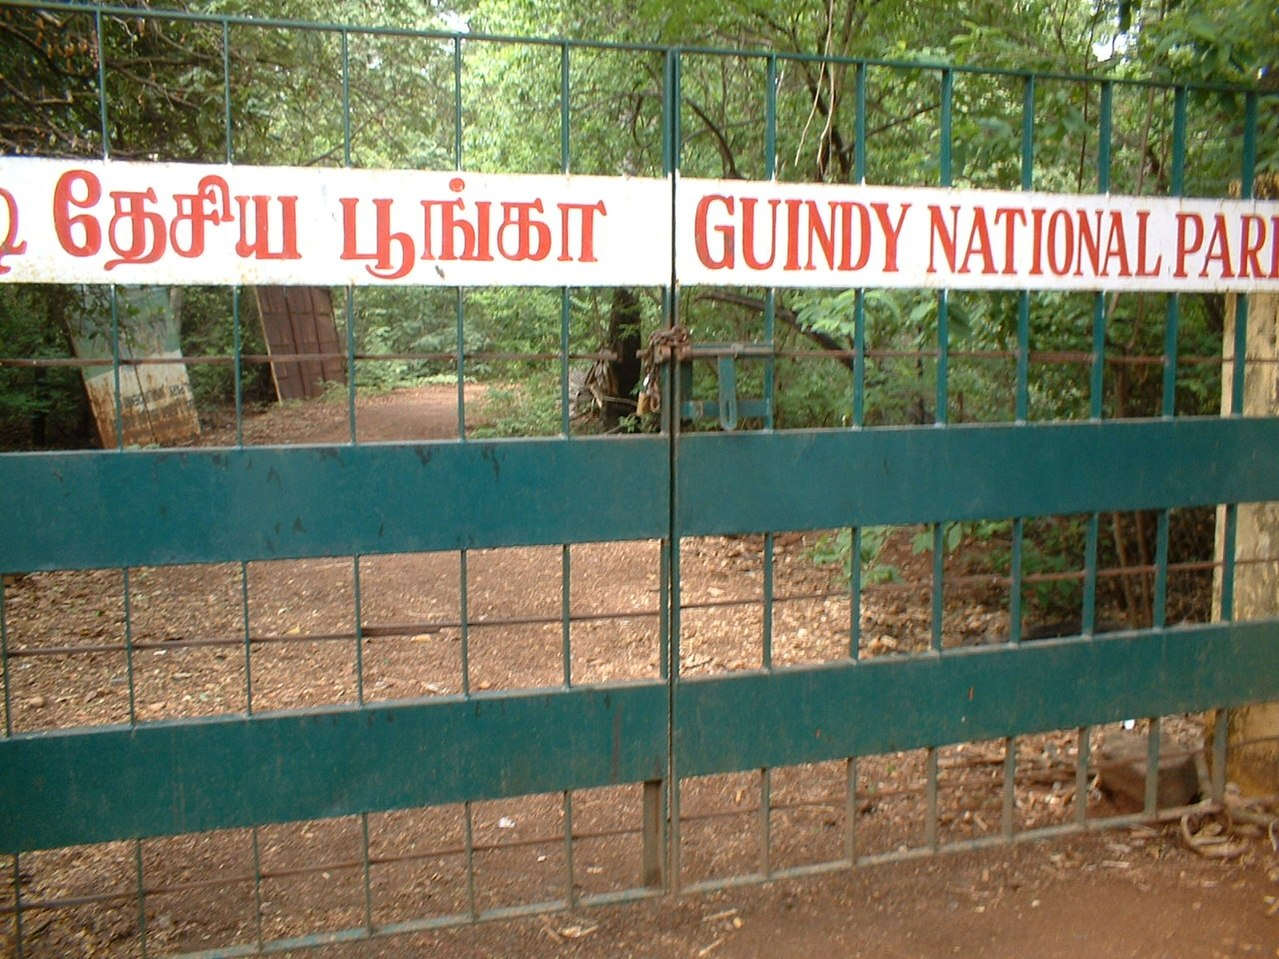 Guindy National Park - The complete information and online sale with